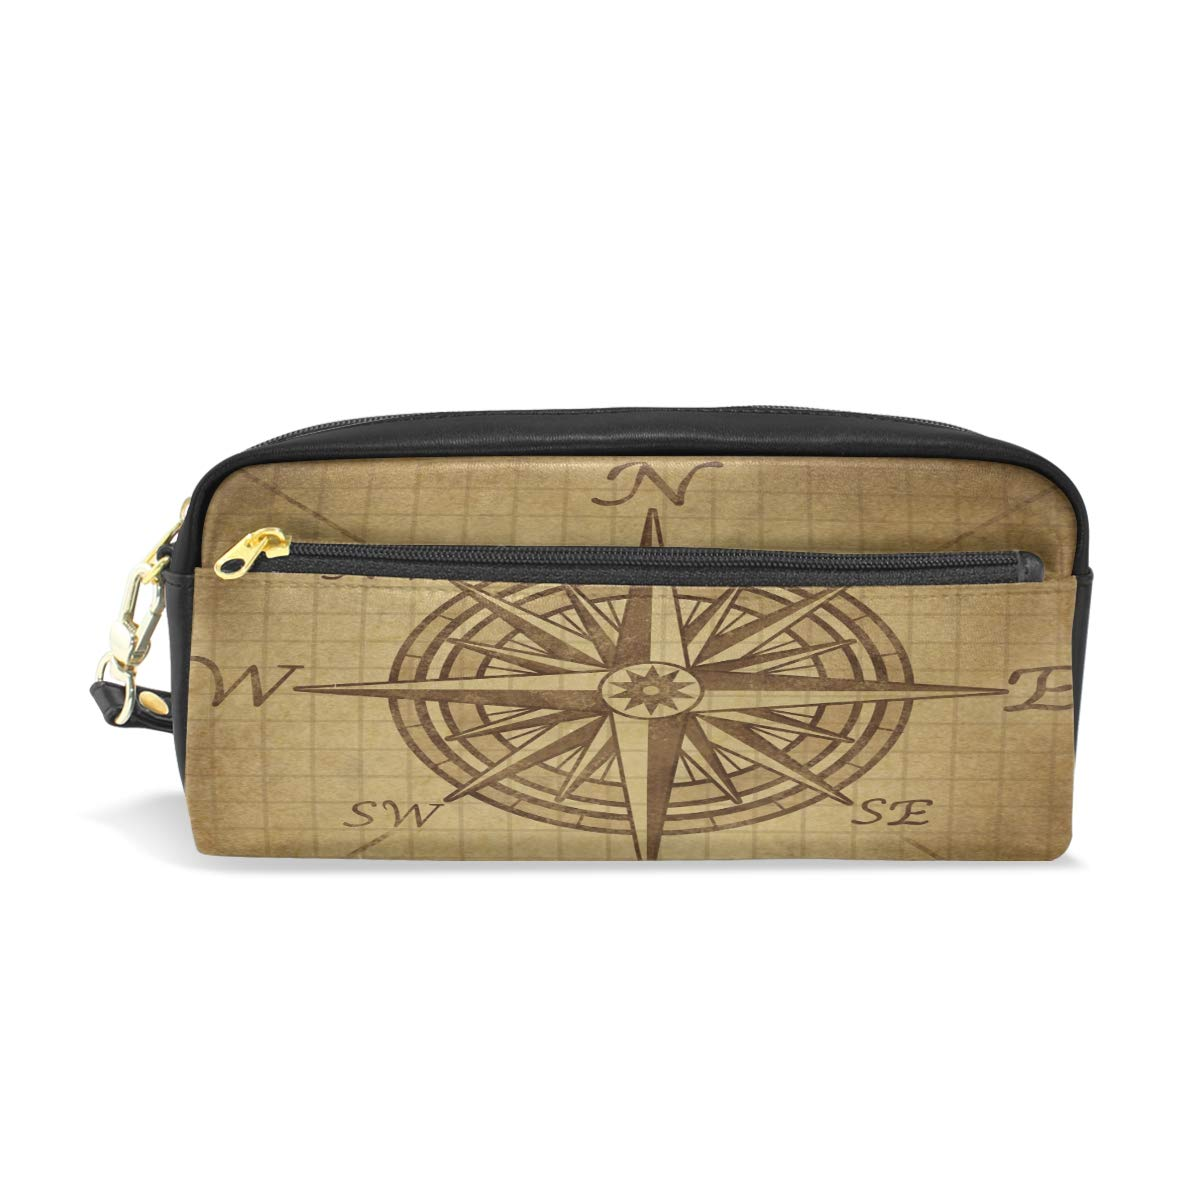 Toprint PU Leather Zipper Pencil Bag, Vintage World Nautical Compass Pen Pencil Case Pouch Makeup Cosmetic Bag for Women Man Work Office